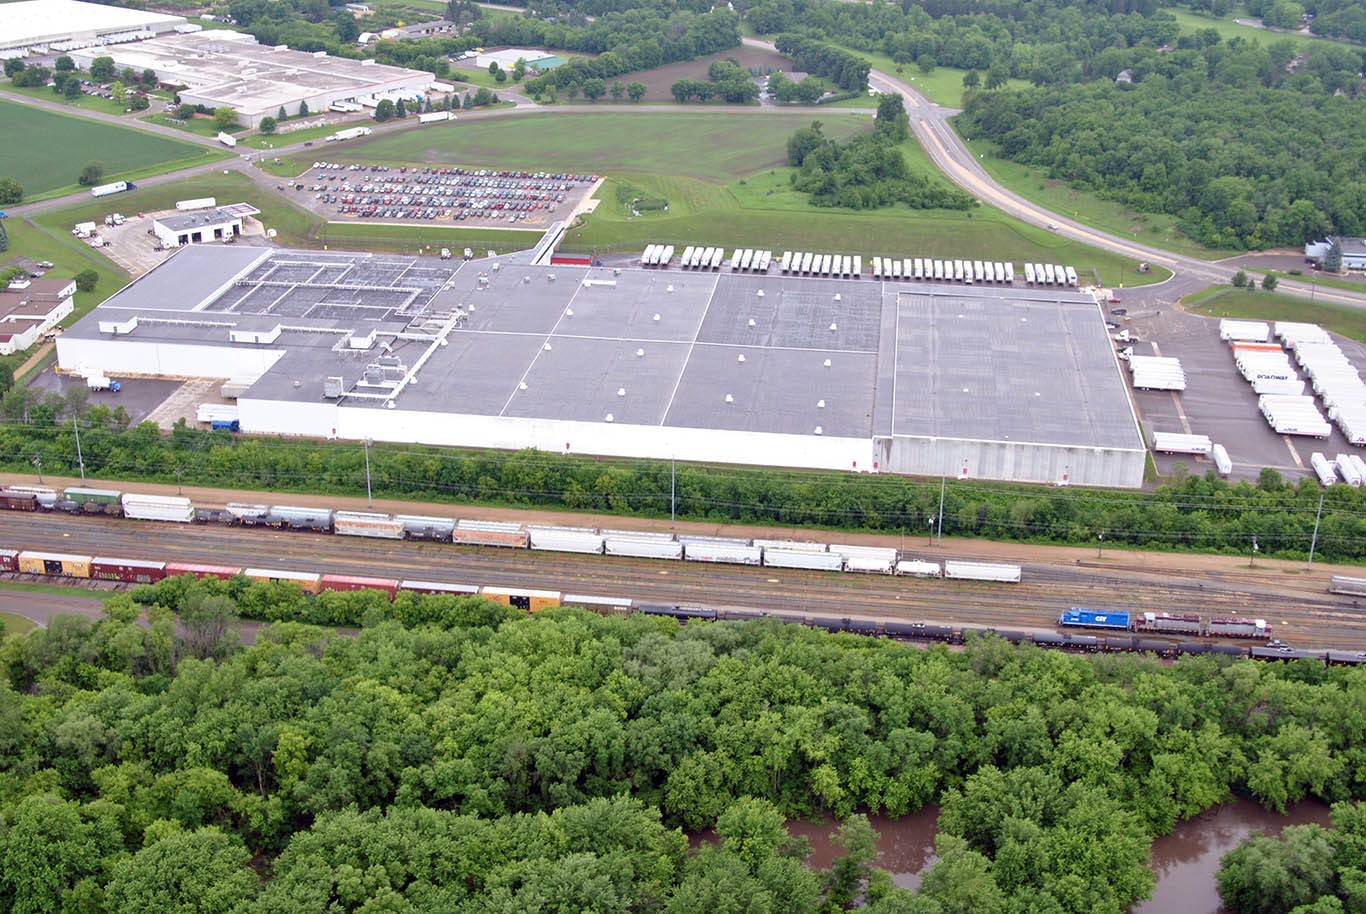 McLane Distribution Center